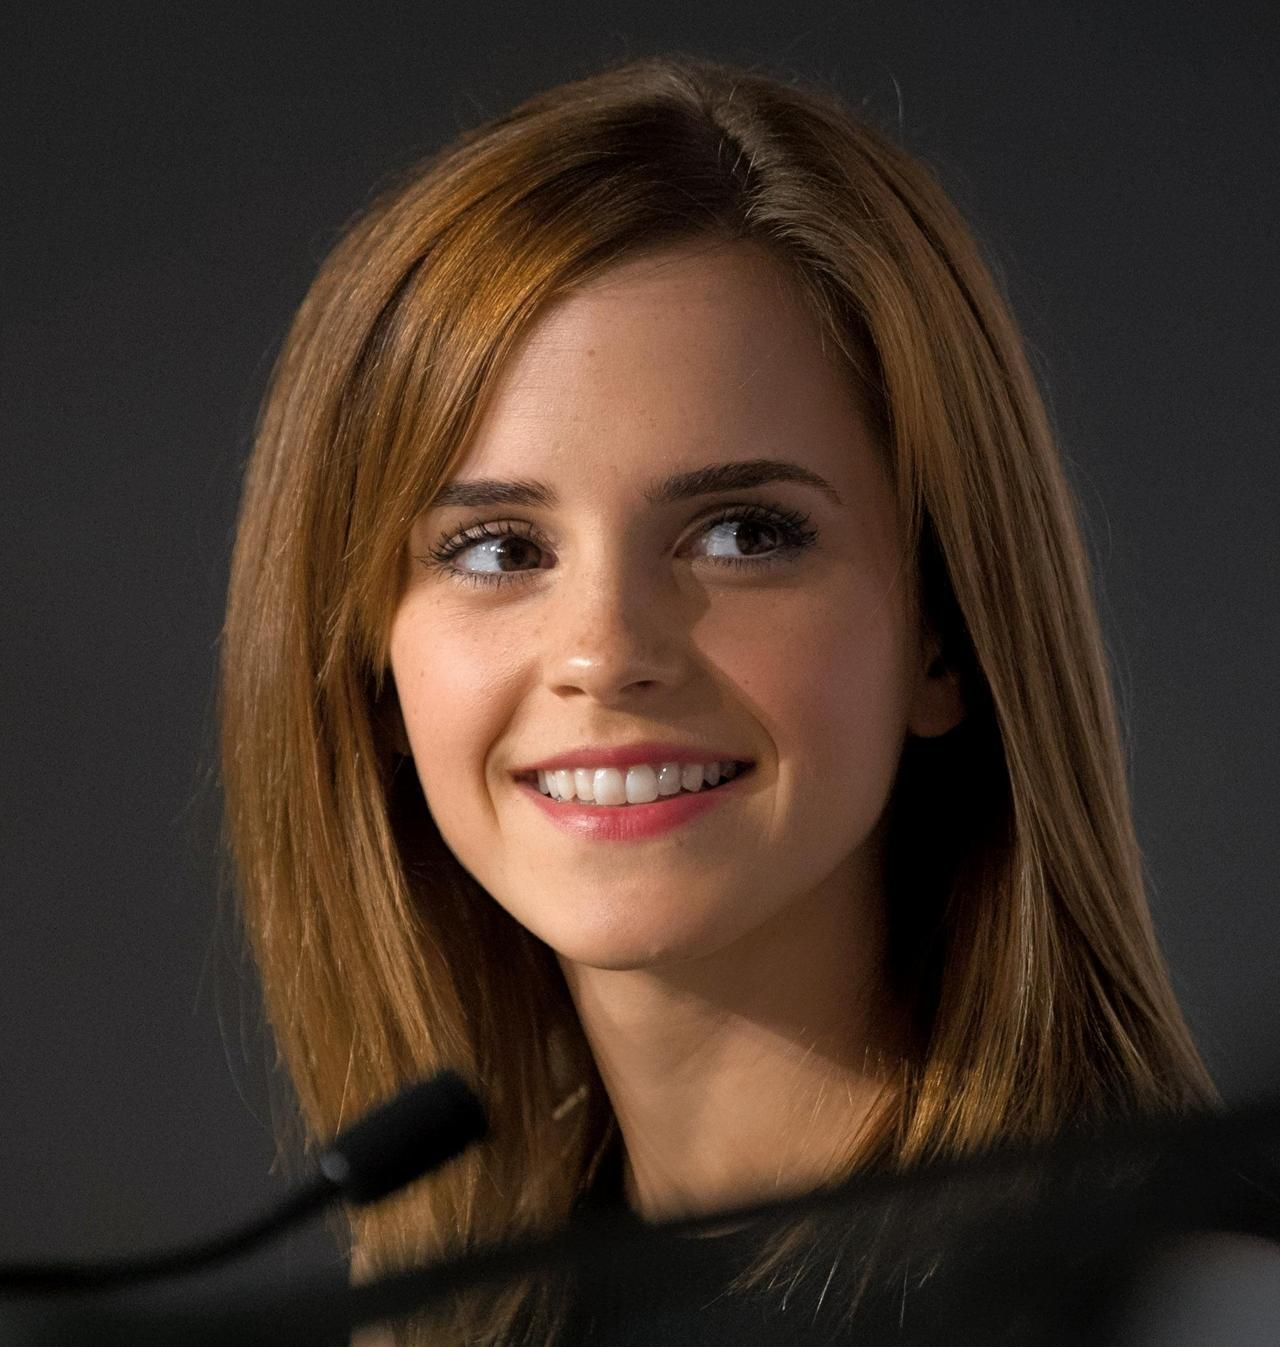 Emma Watson Hair And Makeup Pinterest Emma Watson Celebrity